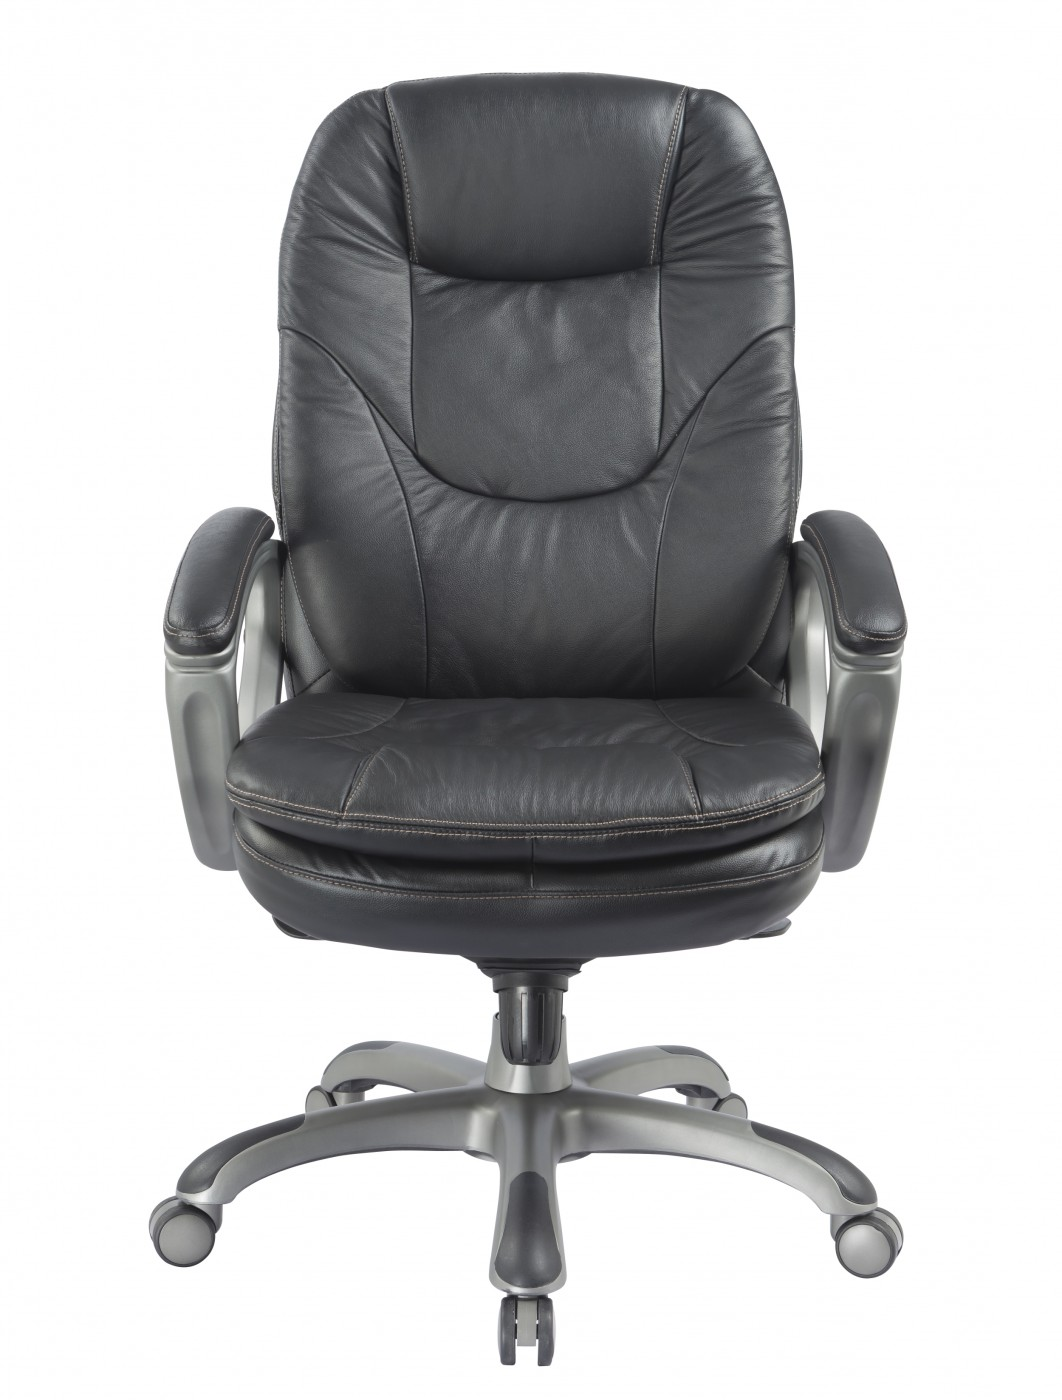 leather chair office walmart chairs kiev bcl u646 lbk